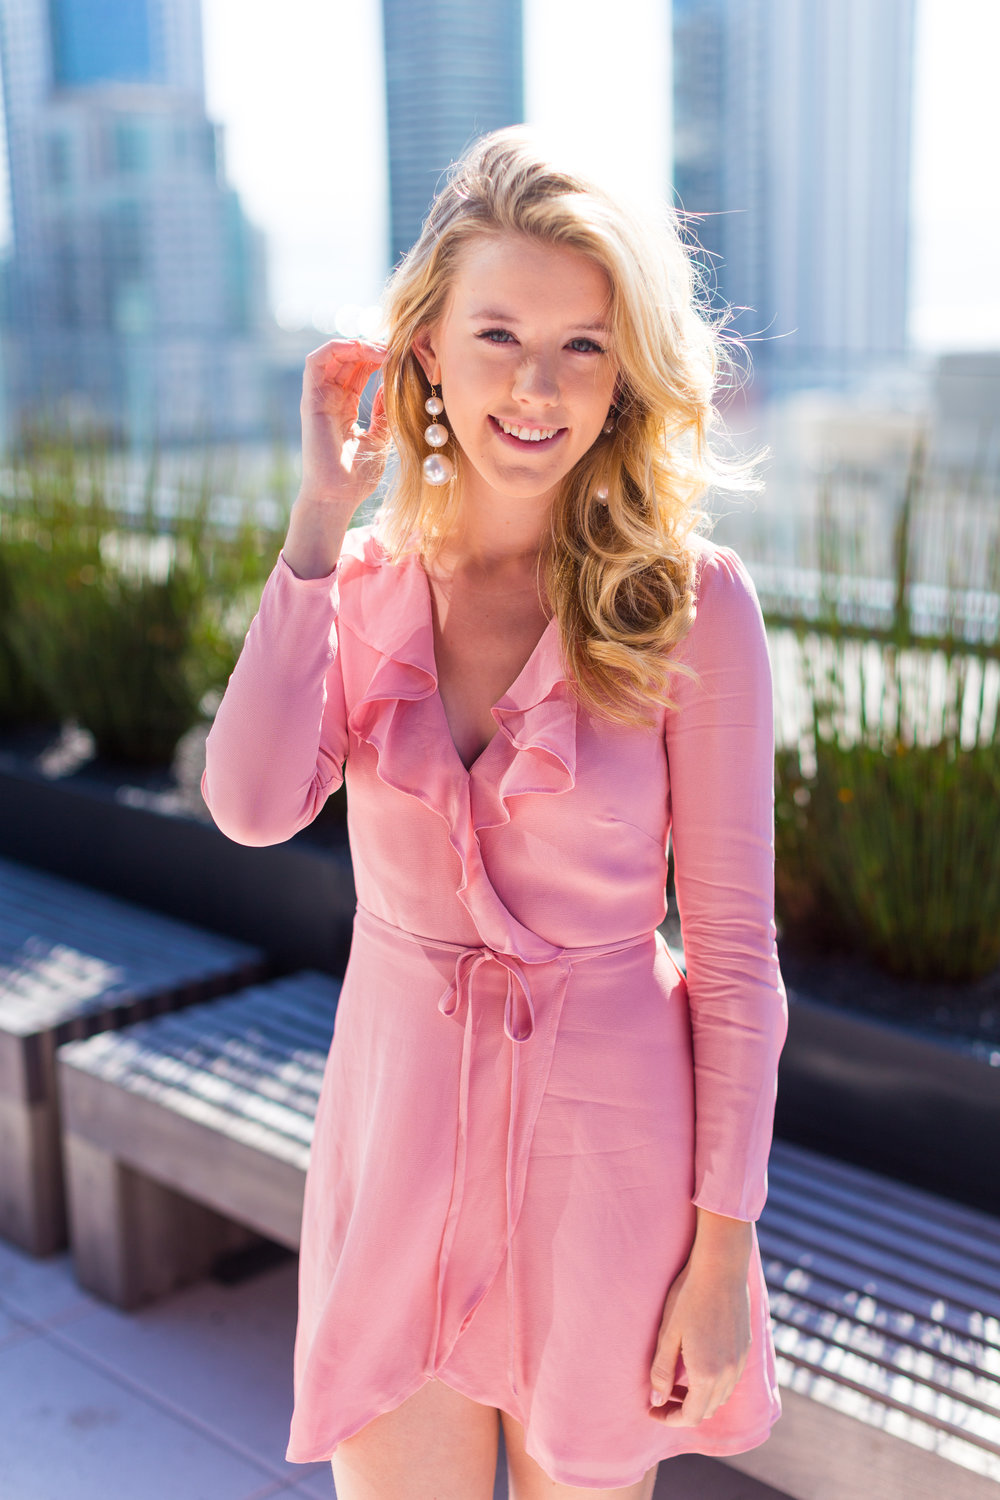 Pink Ruffle Wrap Dress Spring in San Francisco.jpg